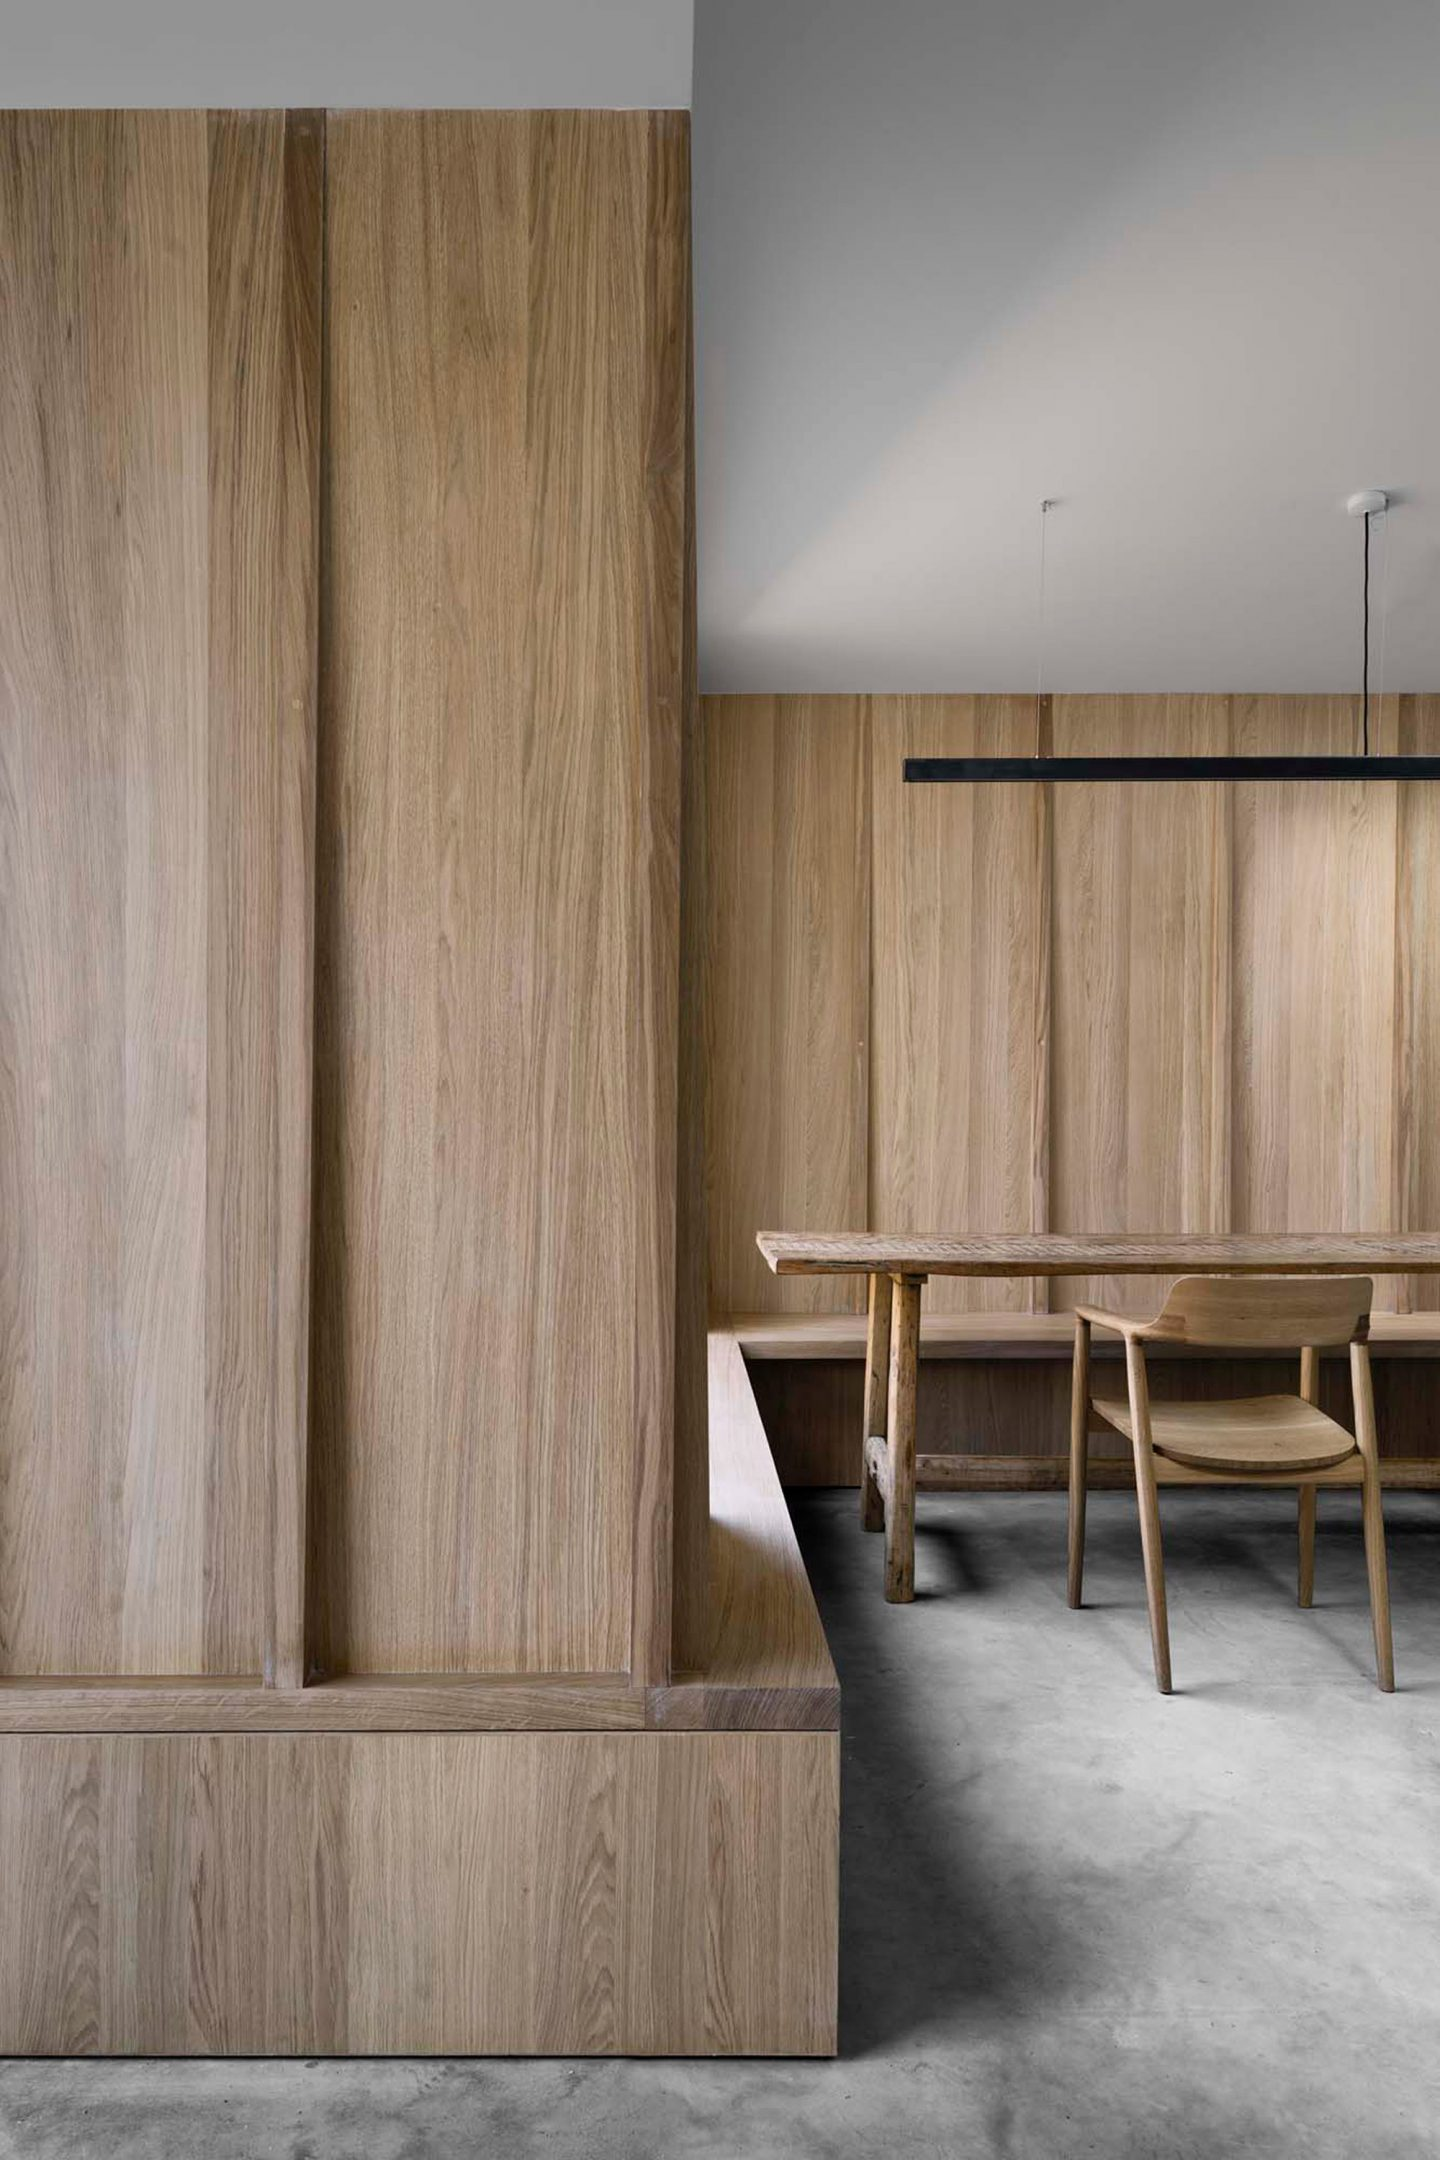 IGNANT-Architecture-Kew-Road-McLaren-Excell-18